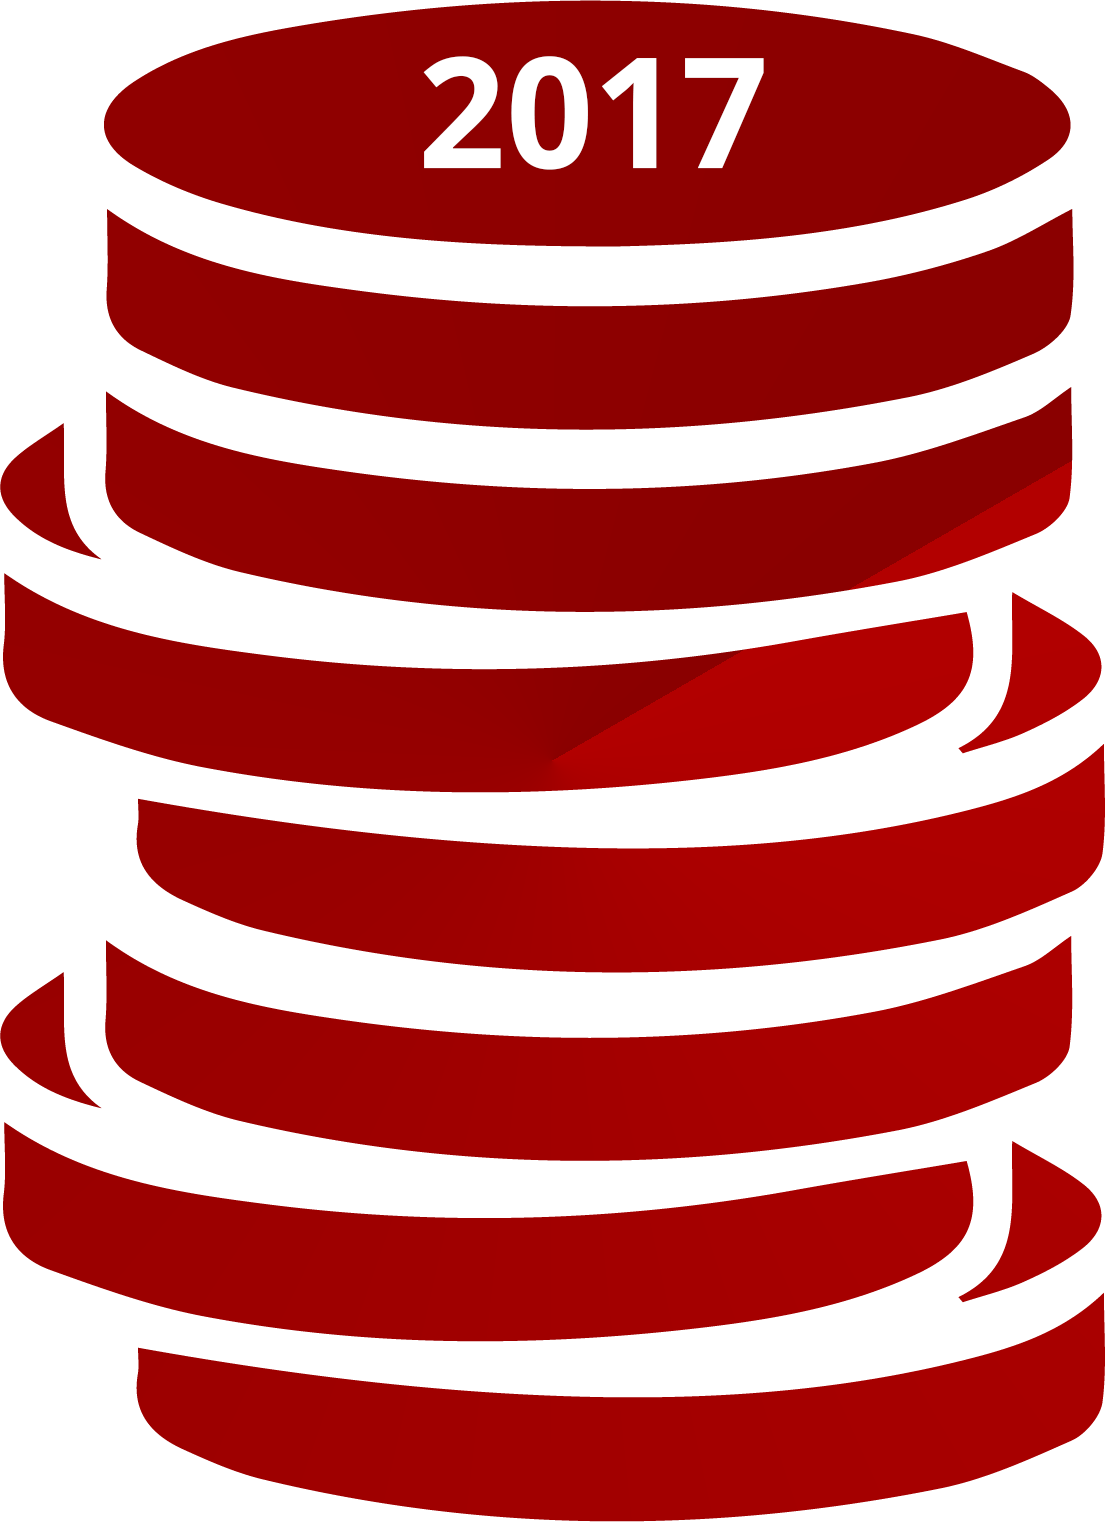 illustration of a stack of coins dated 2017